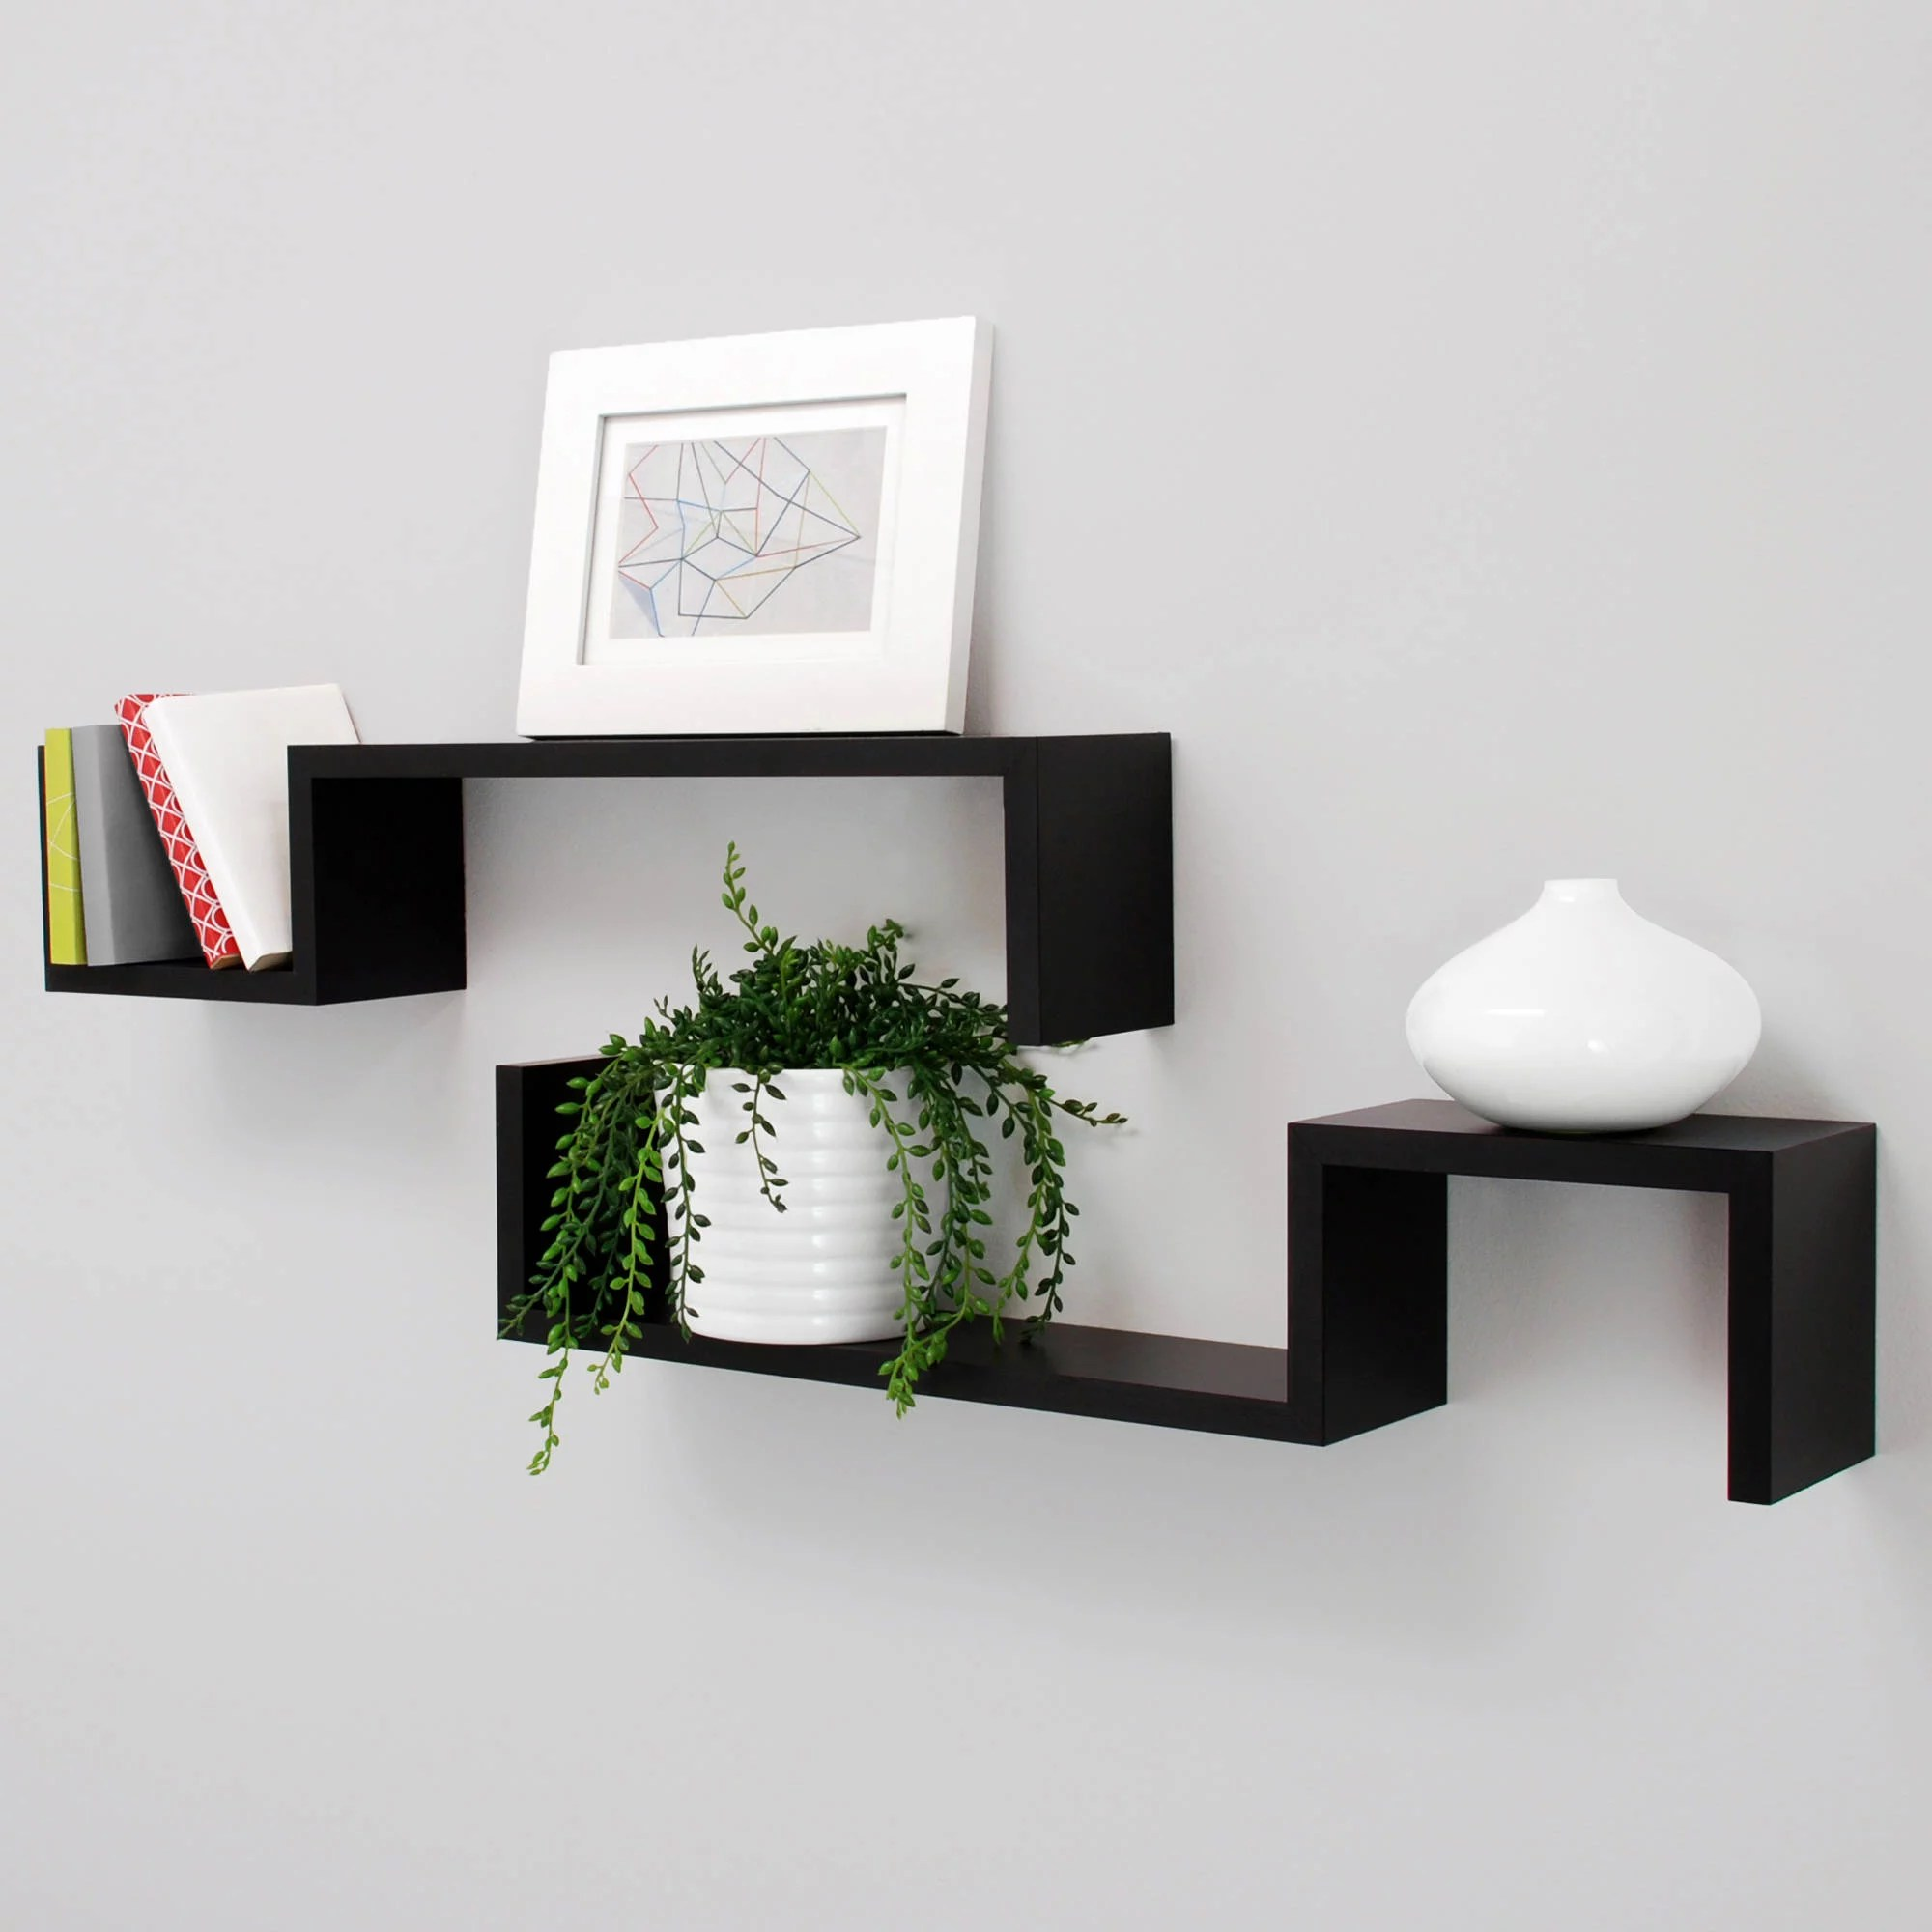 Wandregal Ideen New Black Finished Wood Set Of 2 Wall Floating Shelf Quots